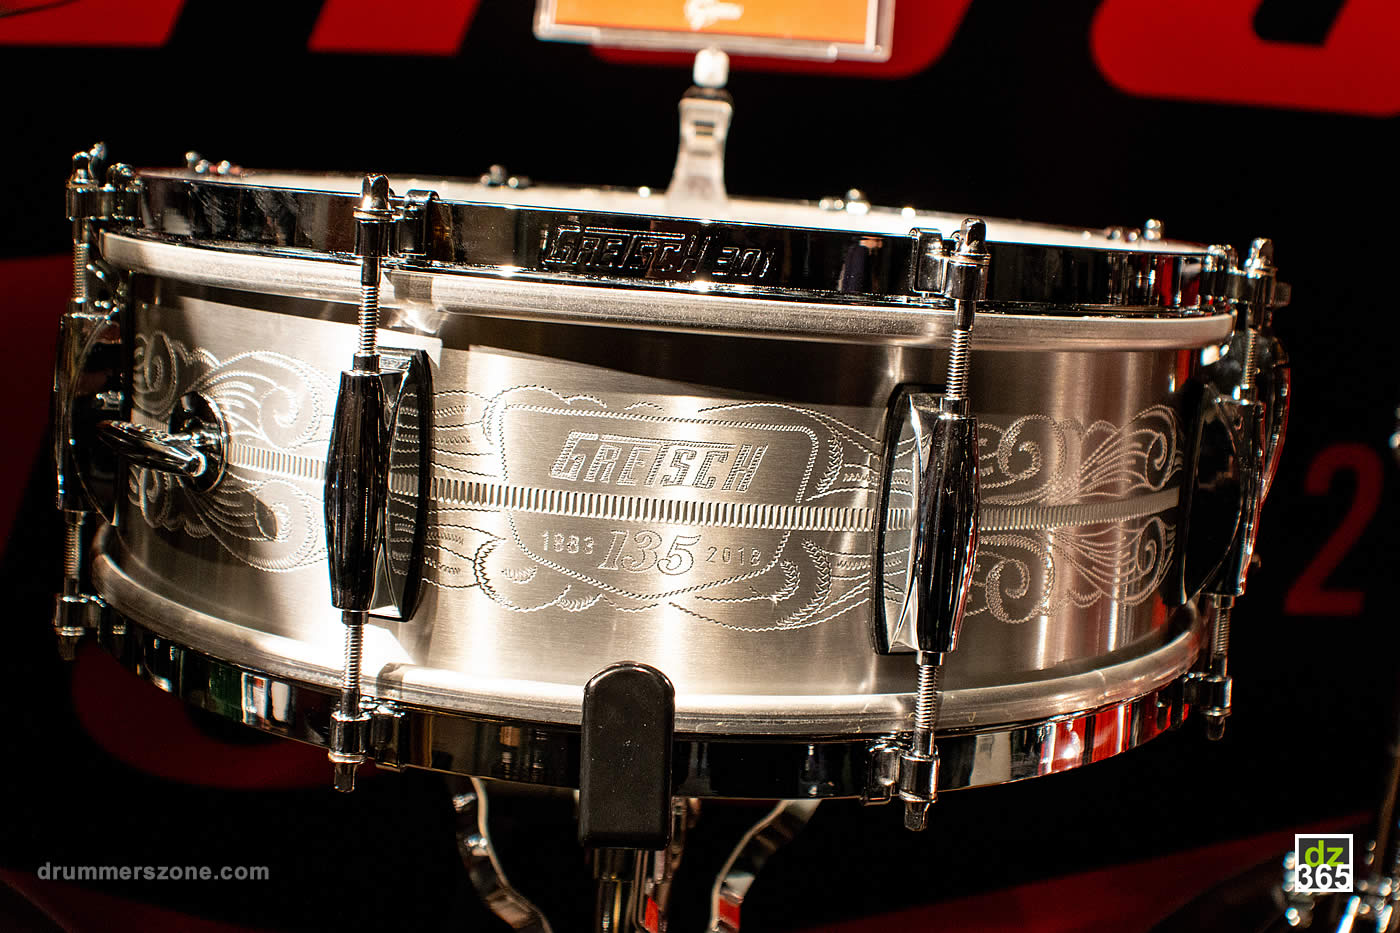 The Gretsch 135th anniversary commemorative snare drum